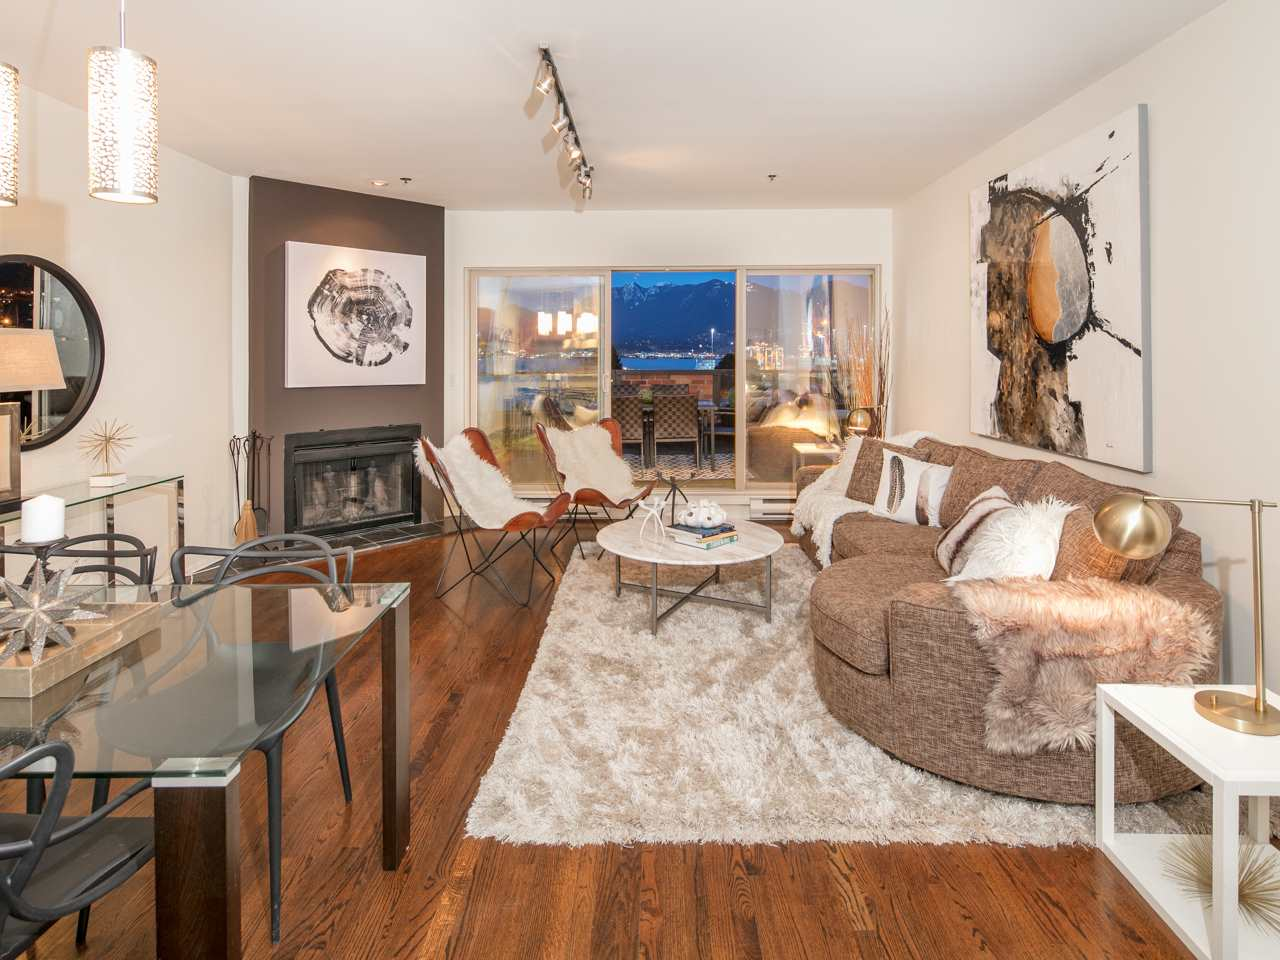 "Photo 6: 501 150 ALEXANDER Street in Vancouver: Downtown VE Condo for sale in ""Mission House"" (Vancouver East)  : MLS® # R2136952"